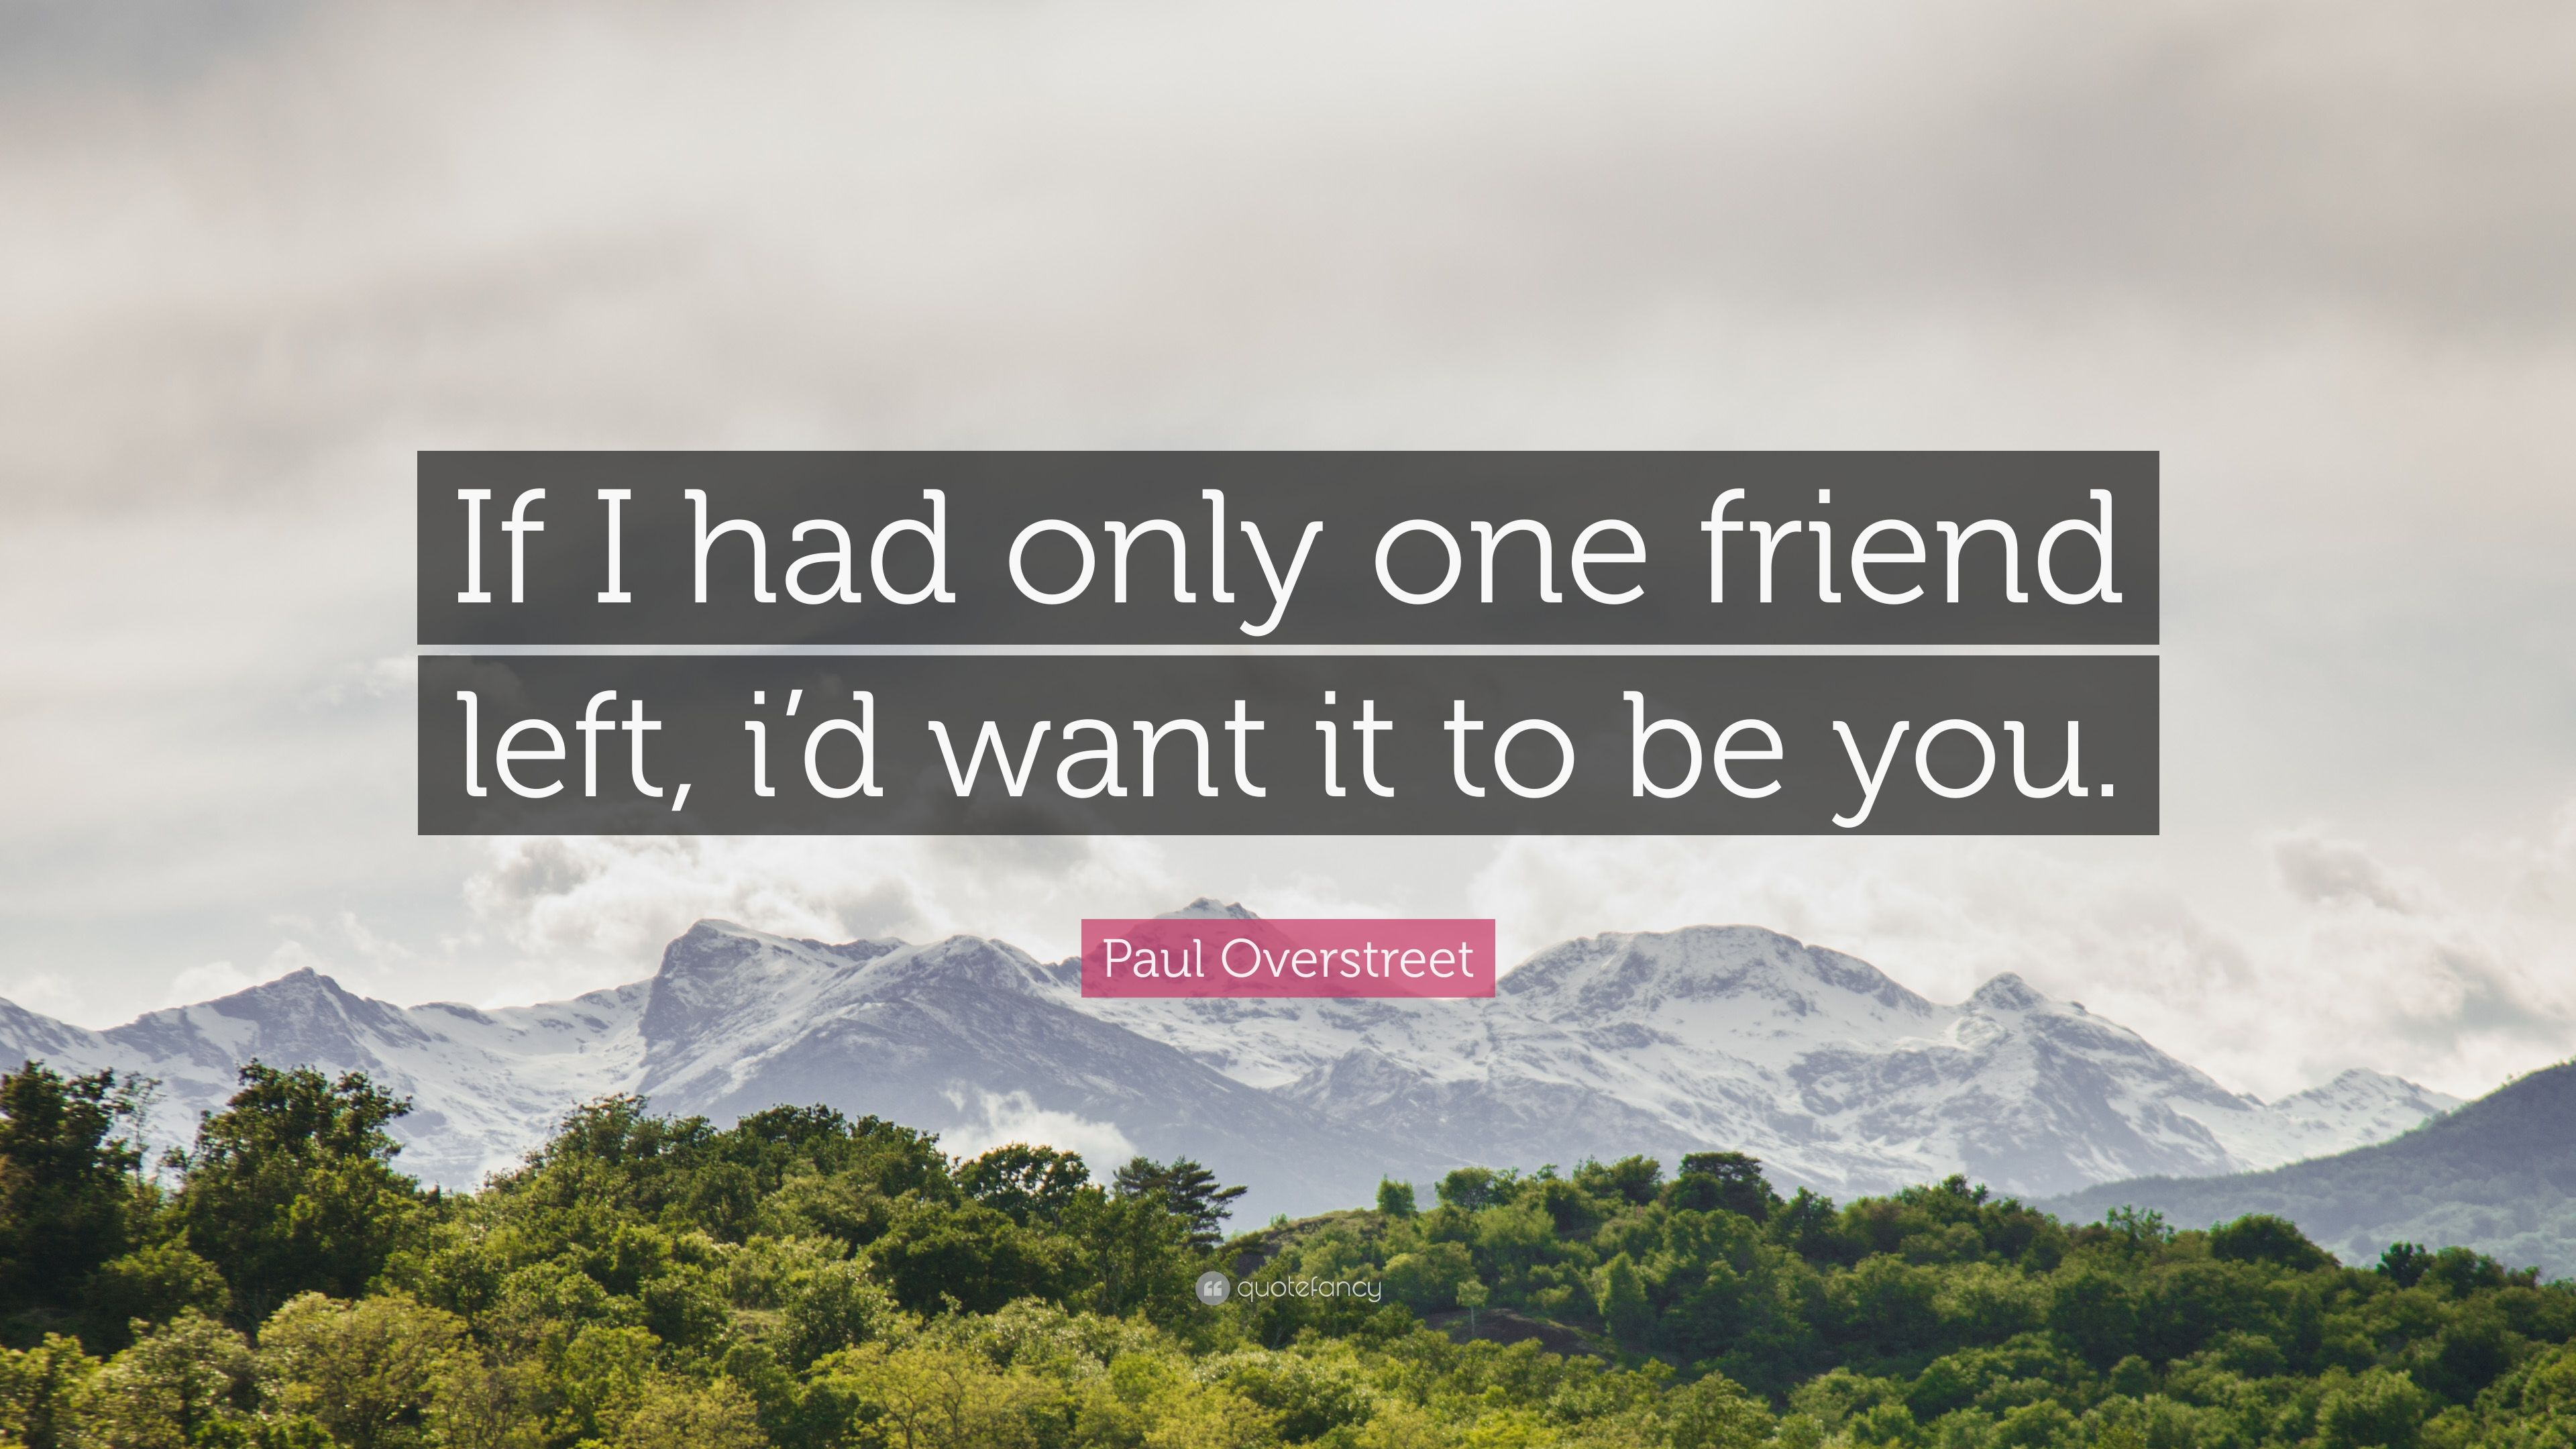 paul overstreet quote if i had only one friend left i d want it